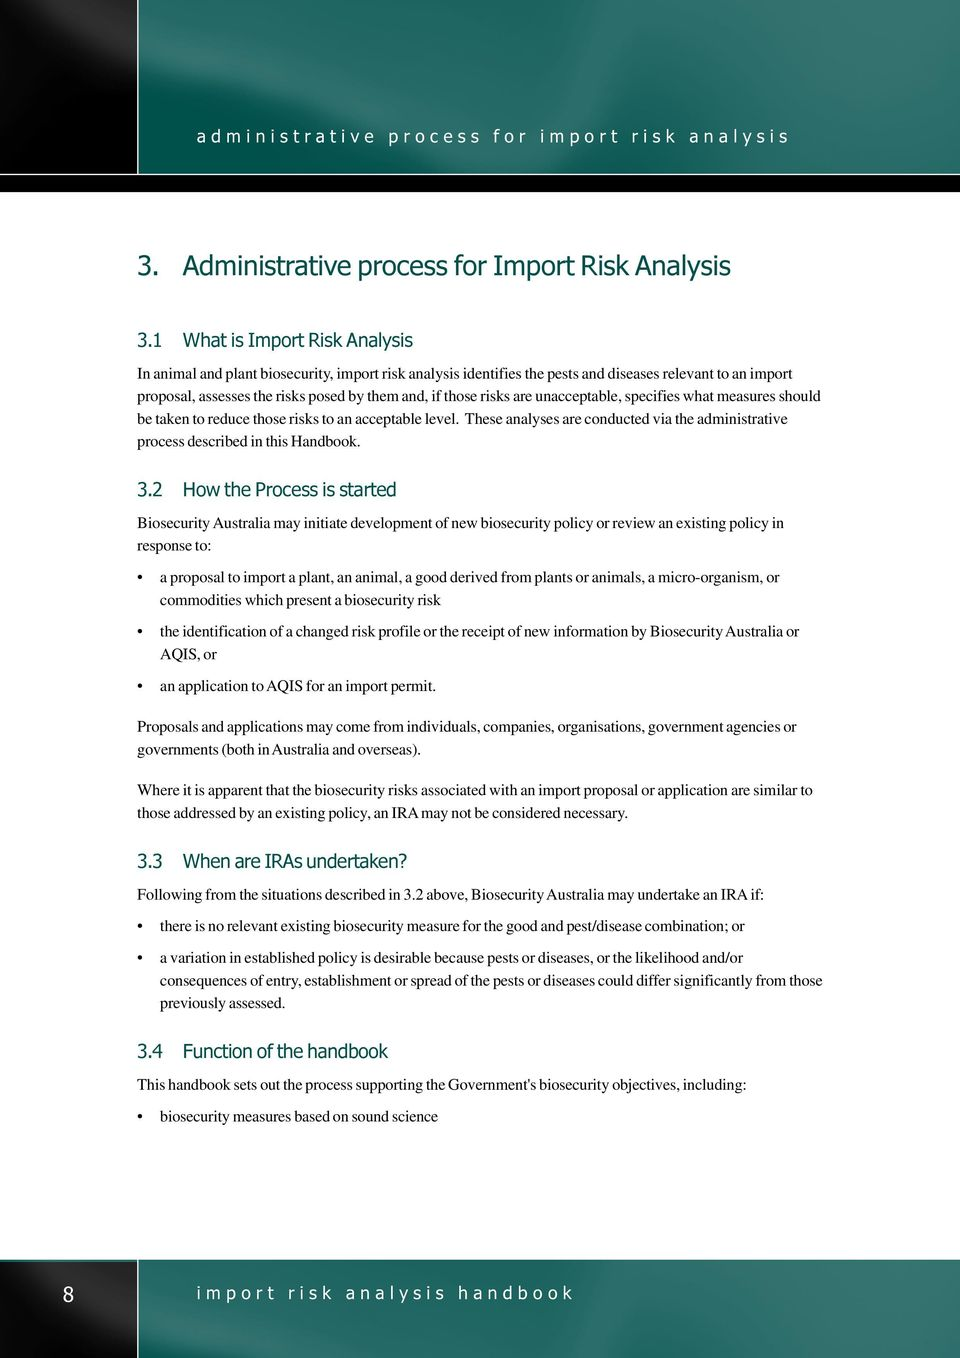 risks are unacceptable, specifies what measures should be taken to reduce those risks to an acceptable level. These analyses are conducted via the administrative process described in this Handbook. 3.